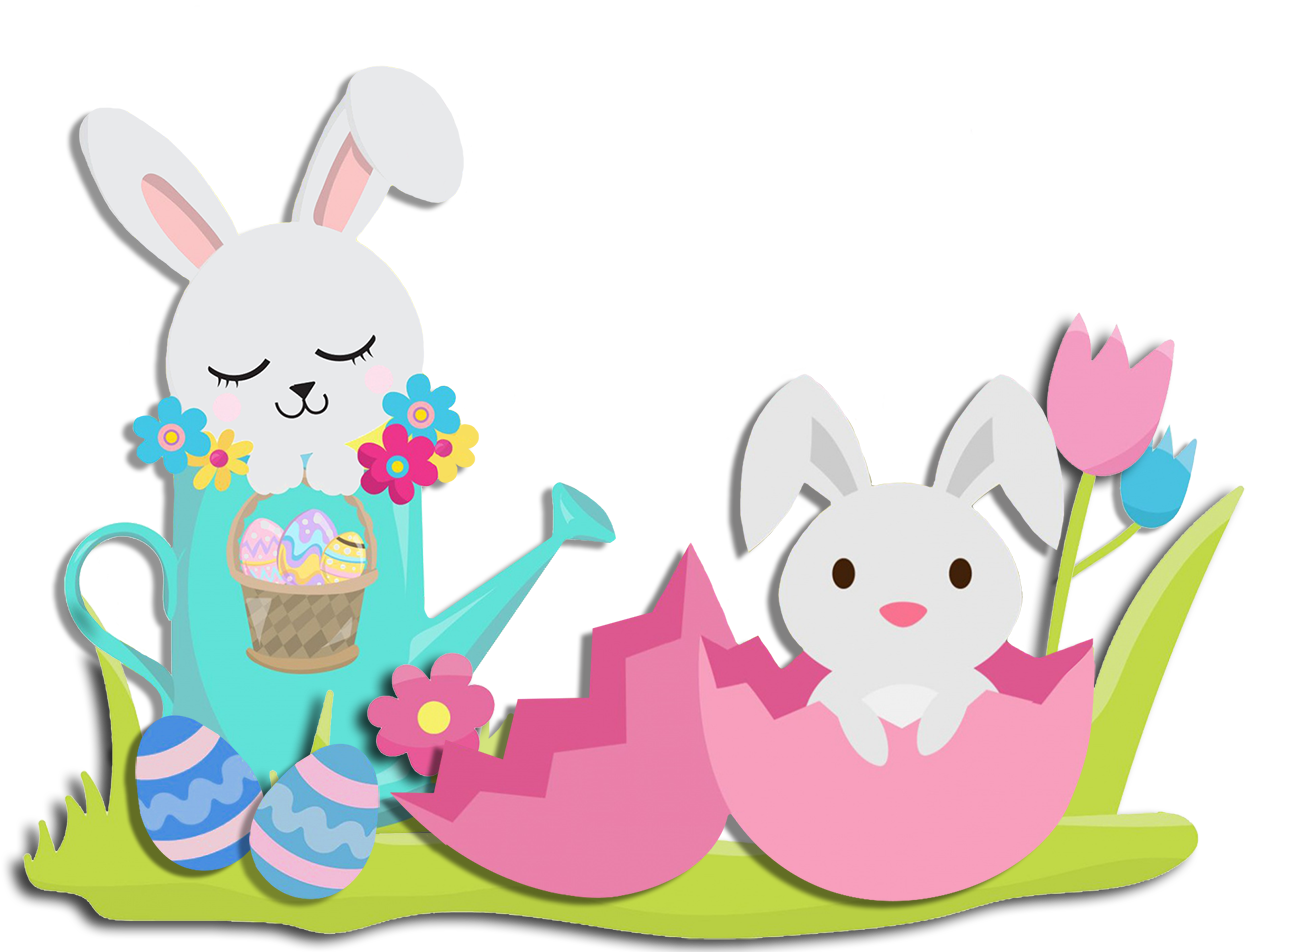 Two Easter bunnies in a garden